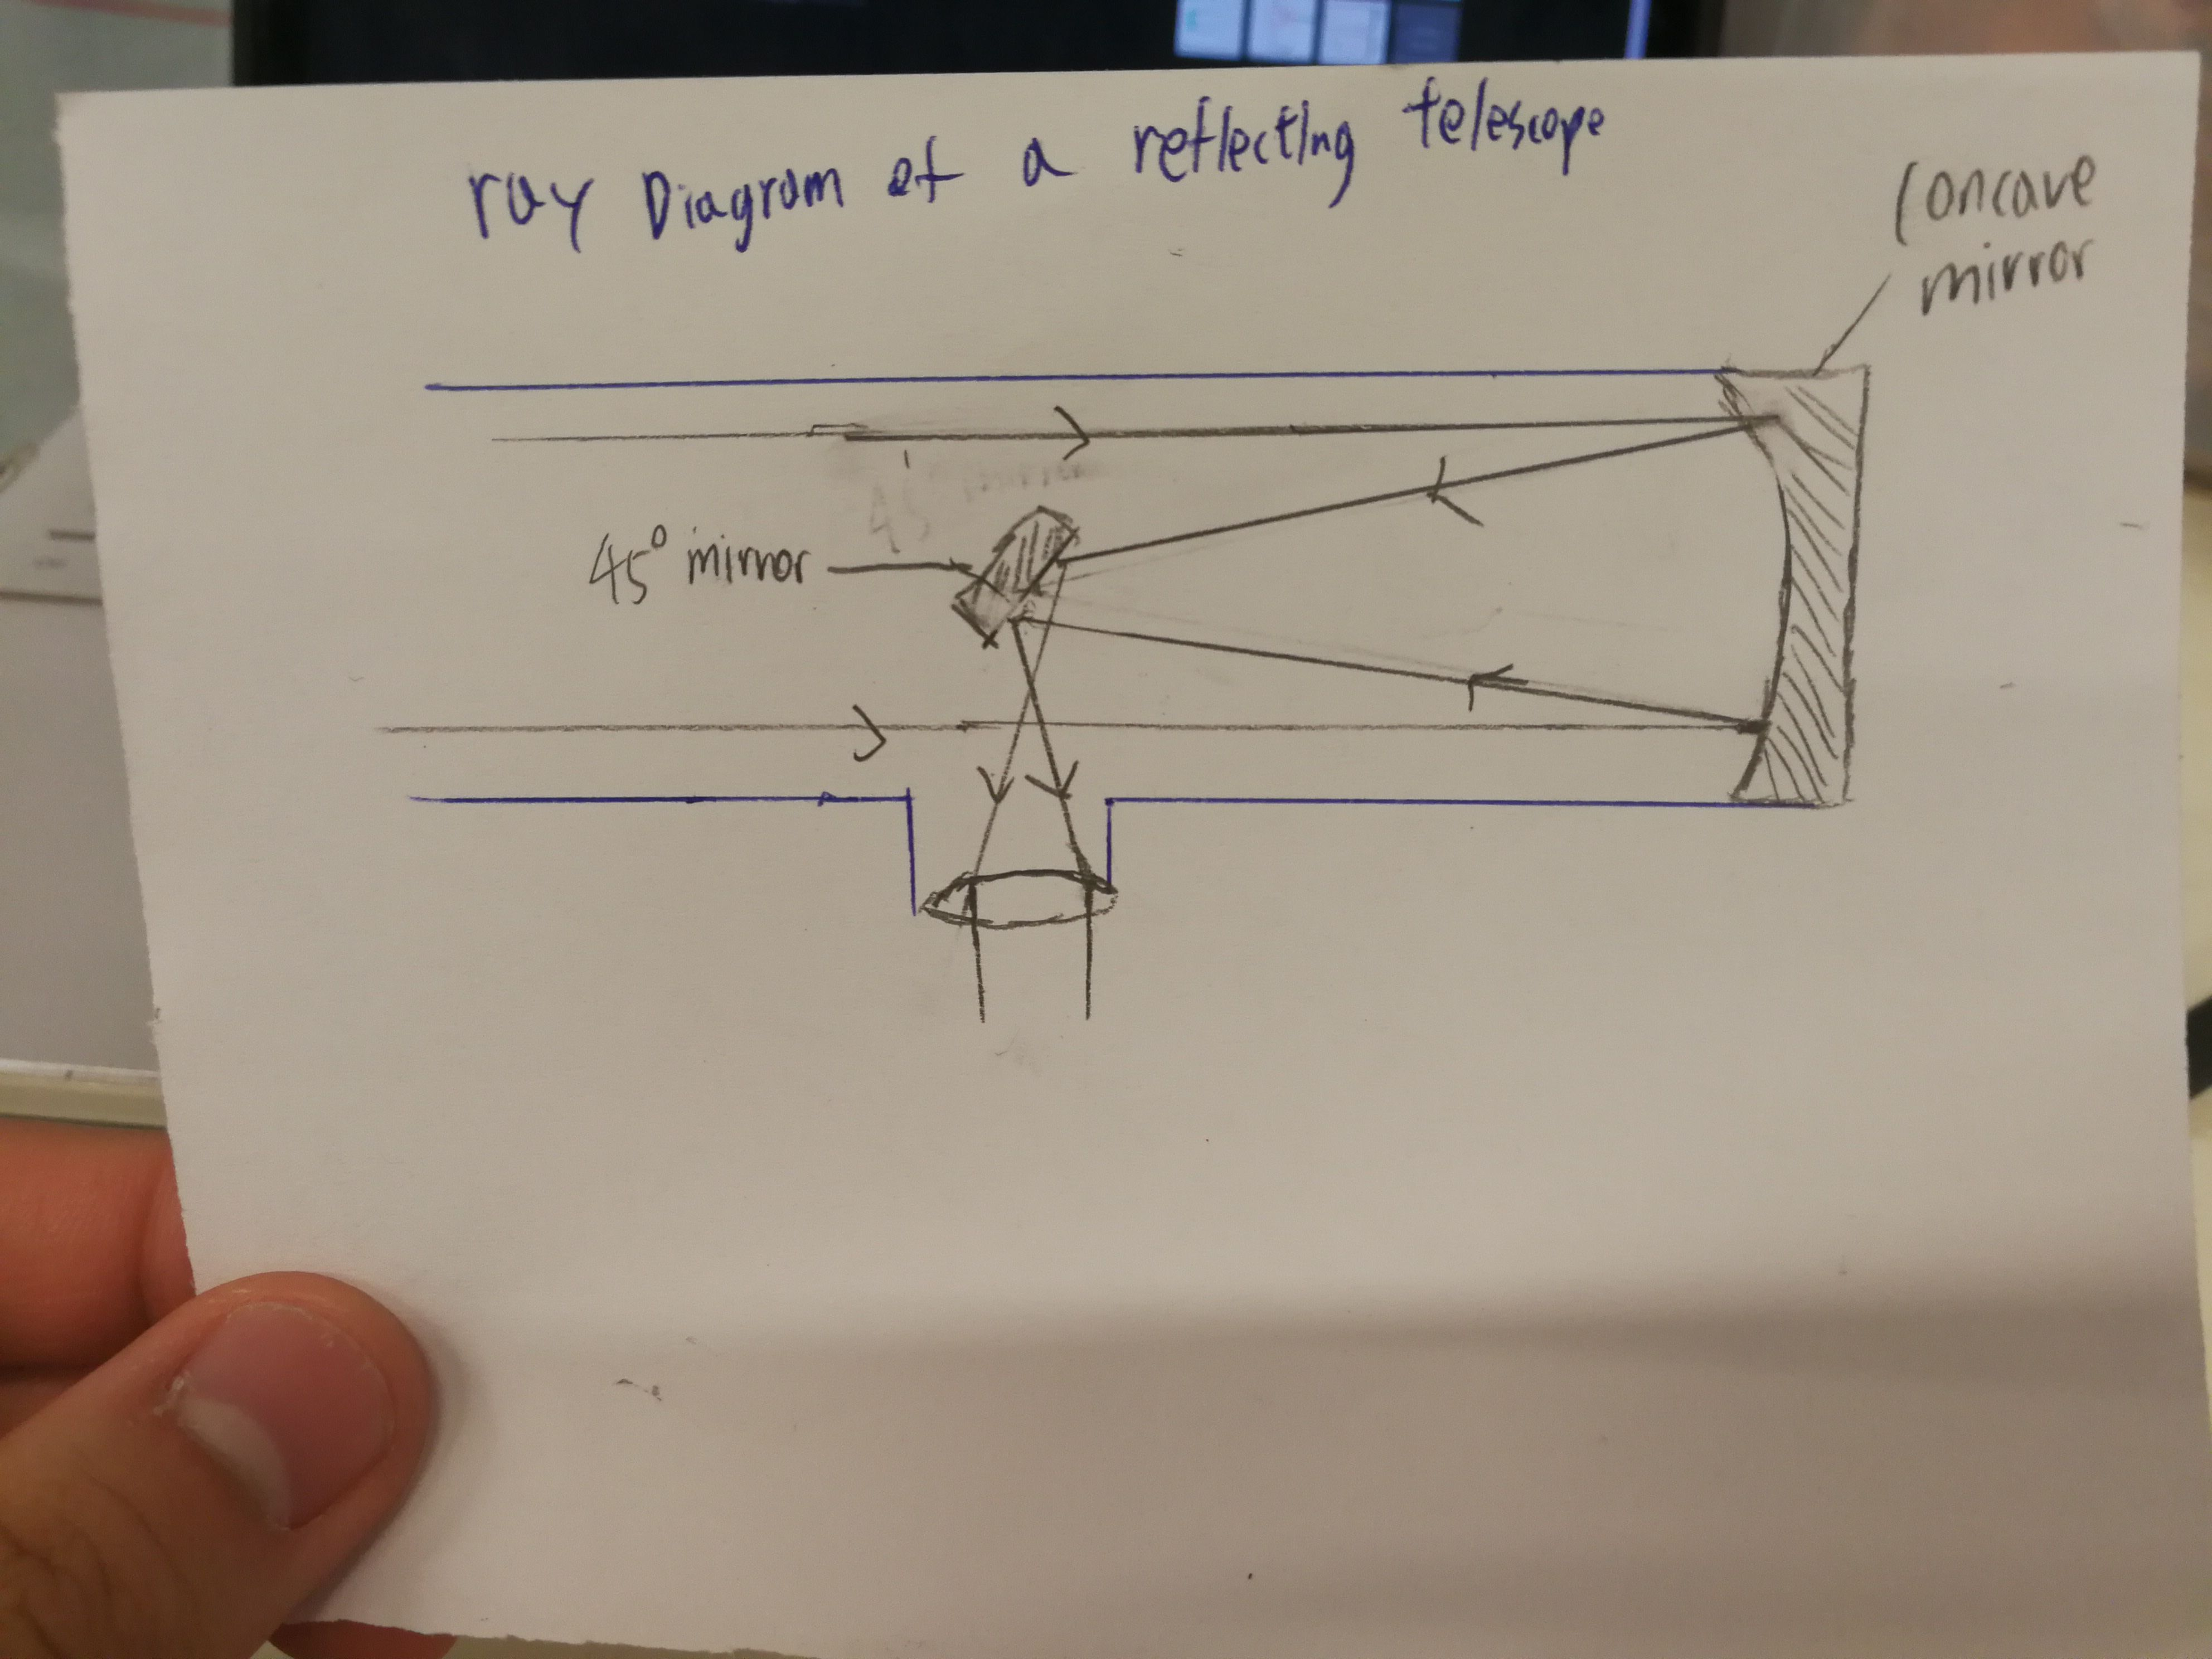 In this hand drawn diagram it shows how a reflecting